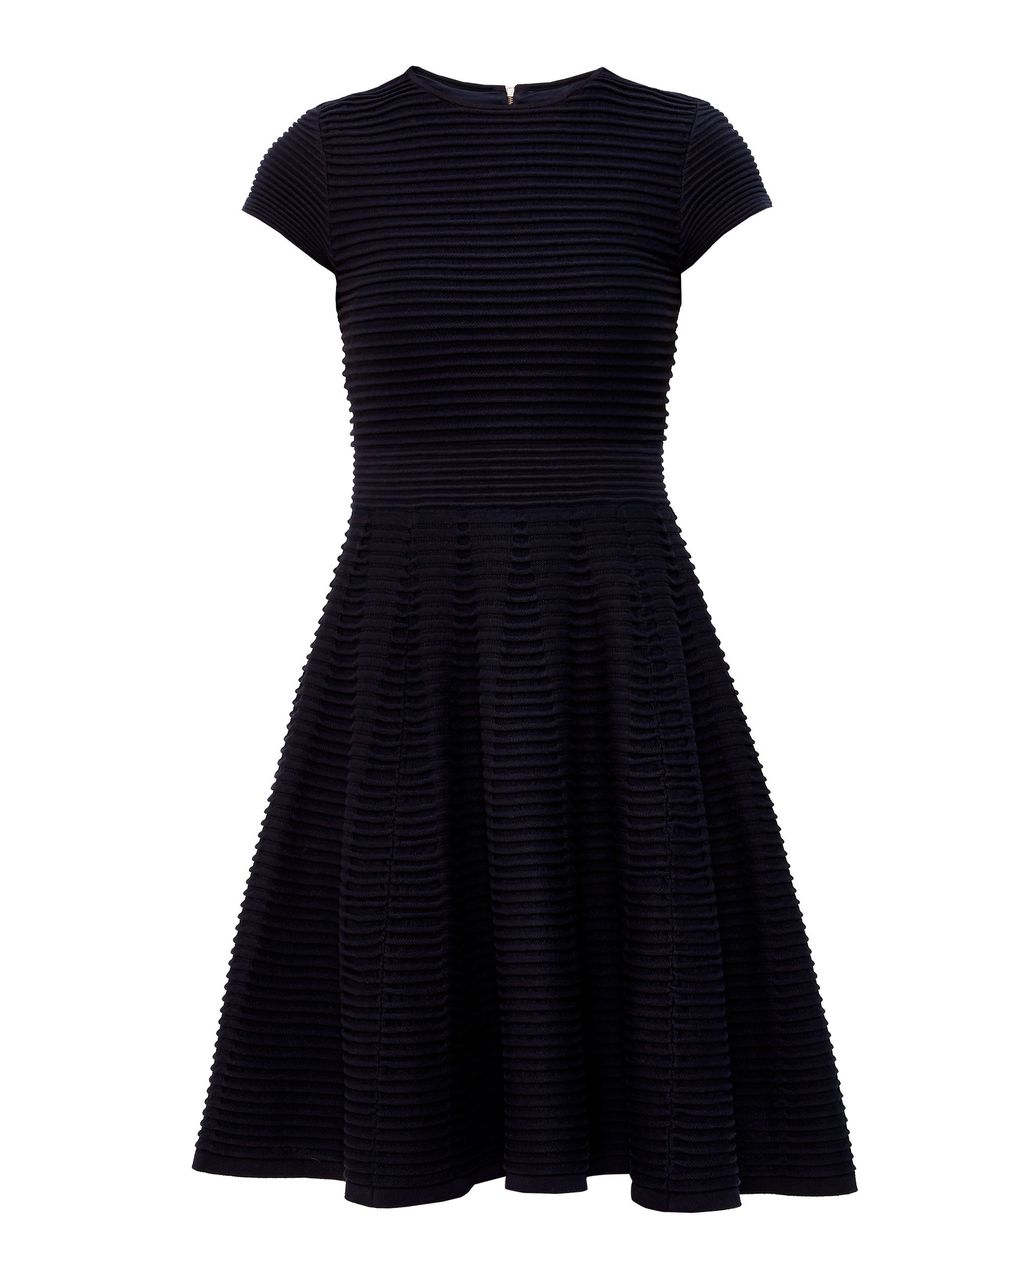 Laysee Knitted Skater Dress, Navy - style: shift; sleeve style: capped; pattern: plain; predominant colour: navy; occasions: evening; length: just above the knee; fit: soft a-line; fibres: polyester/polyamide - stretch; neckline: crew; sleeve length: short sleeve; pattern type: fabric; texture group: jersey - stretchy/drapey; season: s/s 2016; wardrobe: event